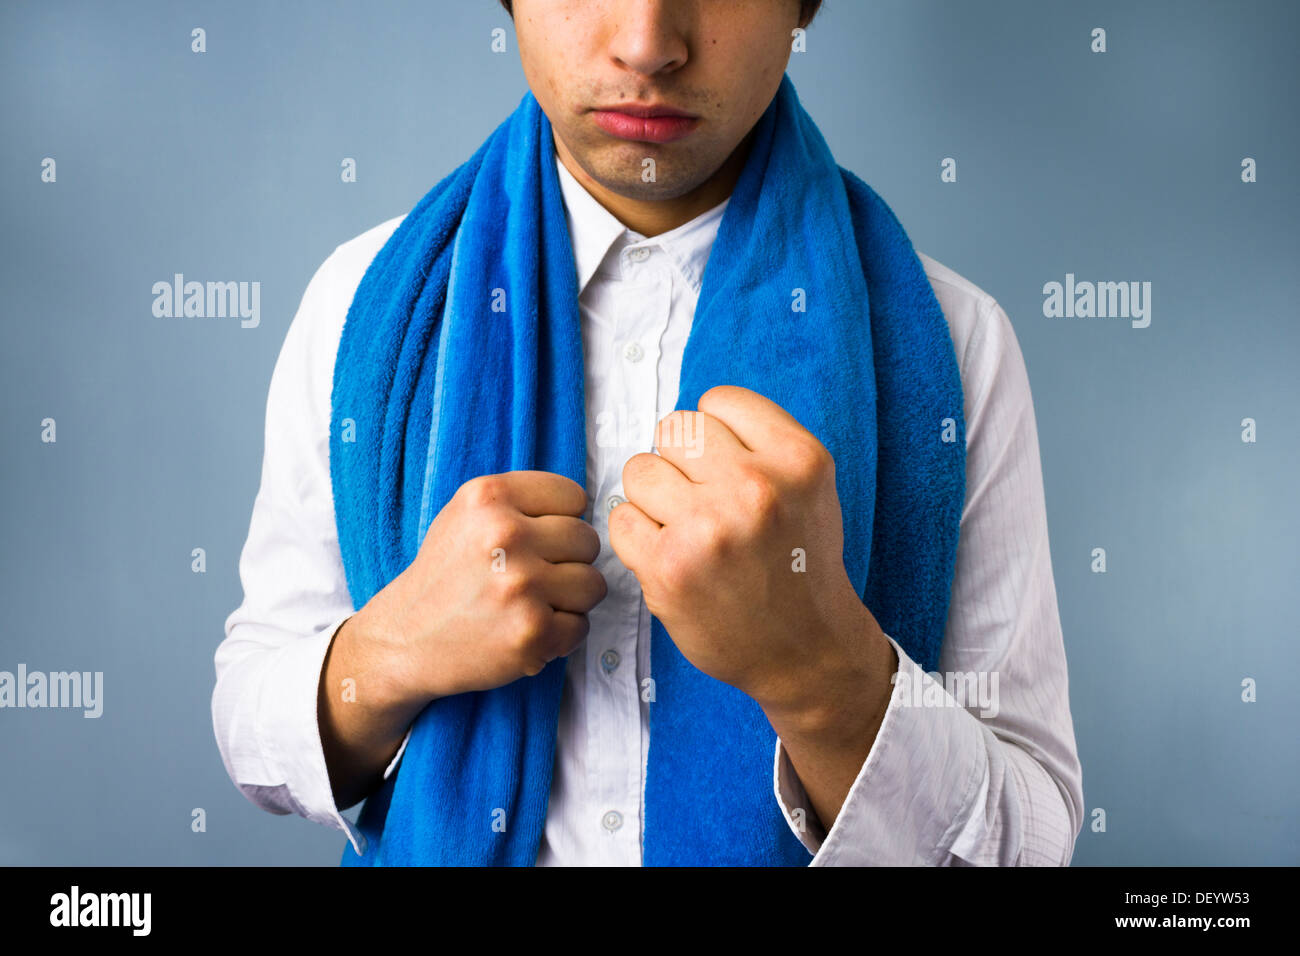 Young businessman and white collar boxer in fighting stance with fists raised - Stock Image